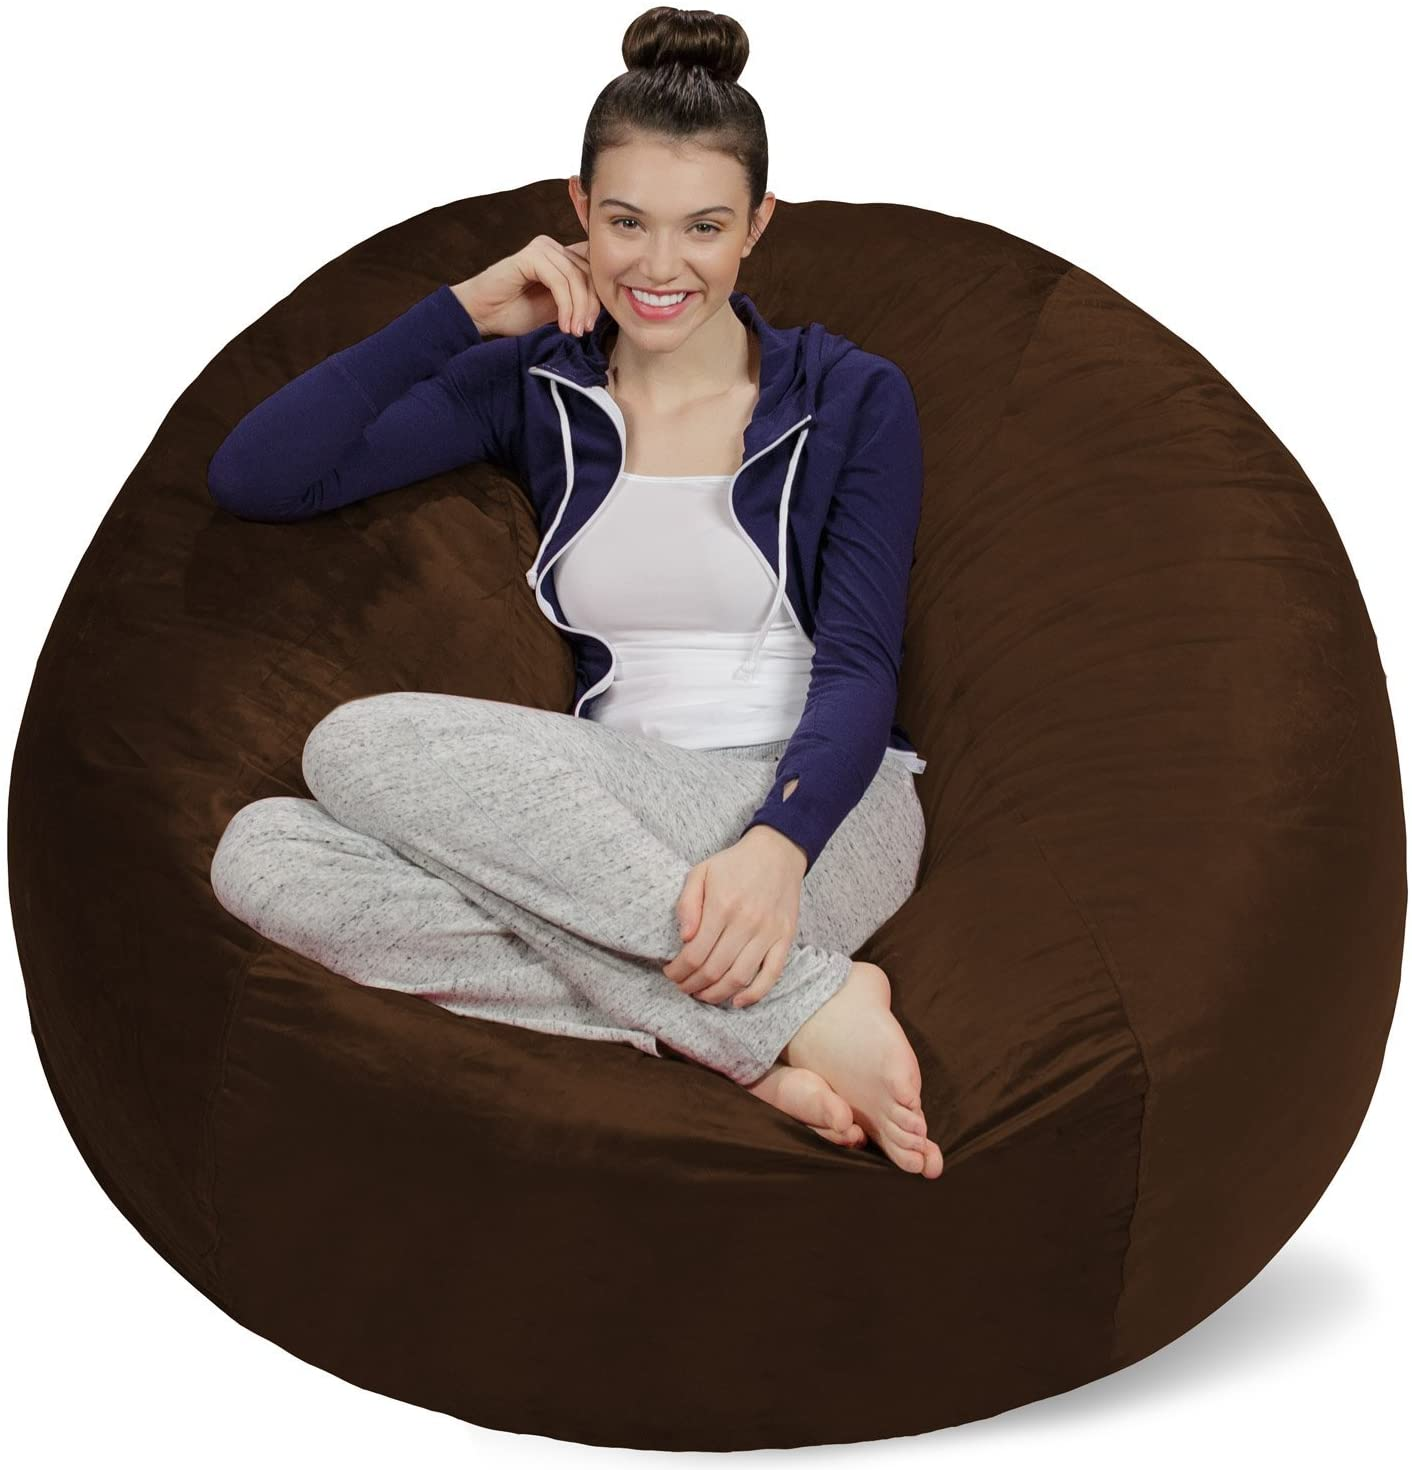 Memory Foam Beanless Bag Chair with Microsuede Cover Foam Filled Furniture for Dorm Room Sofa Sack Adults Chocolate 5 Plush Ultra Soft Bean Bags Chairs for Kids Teens